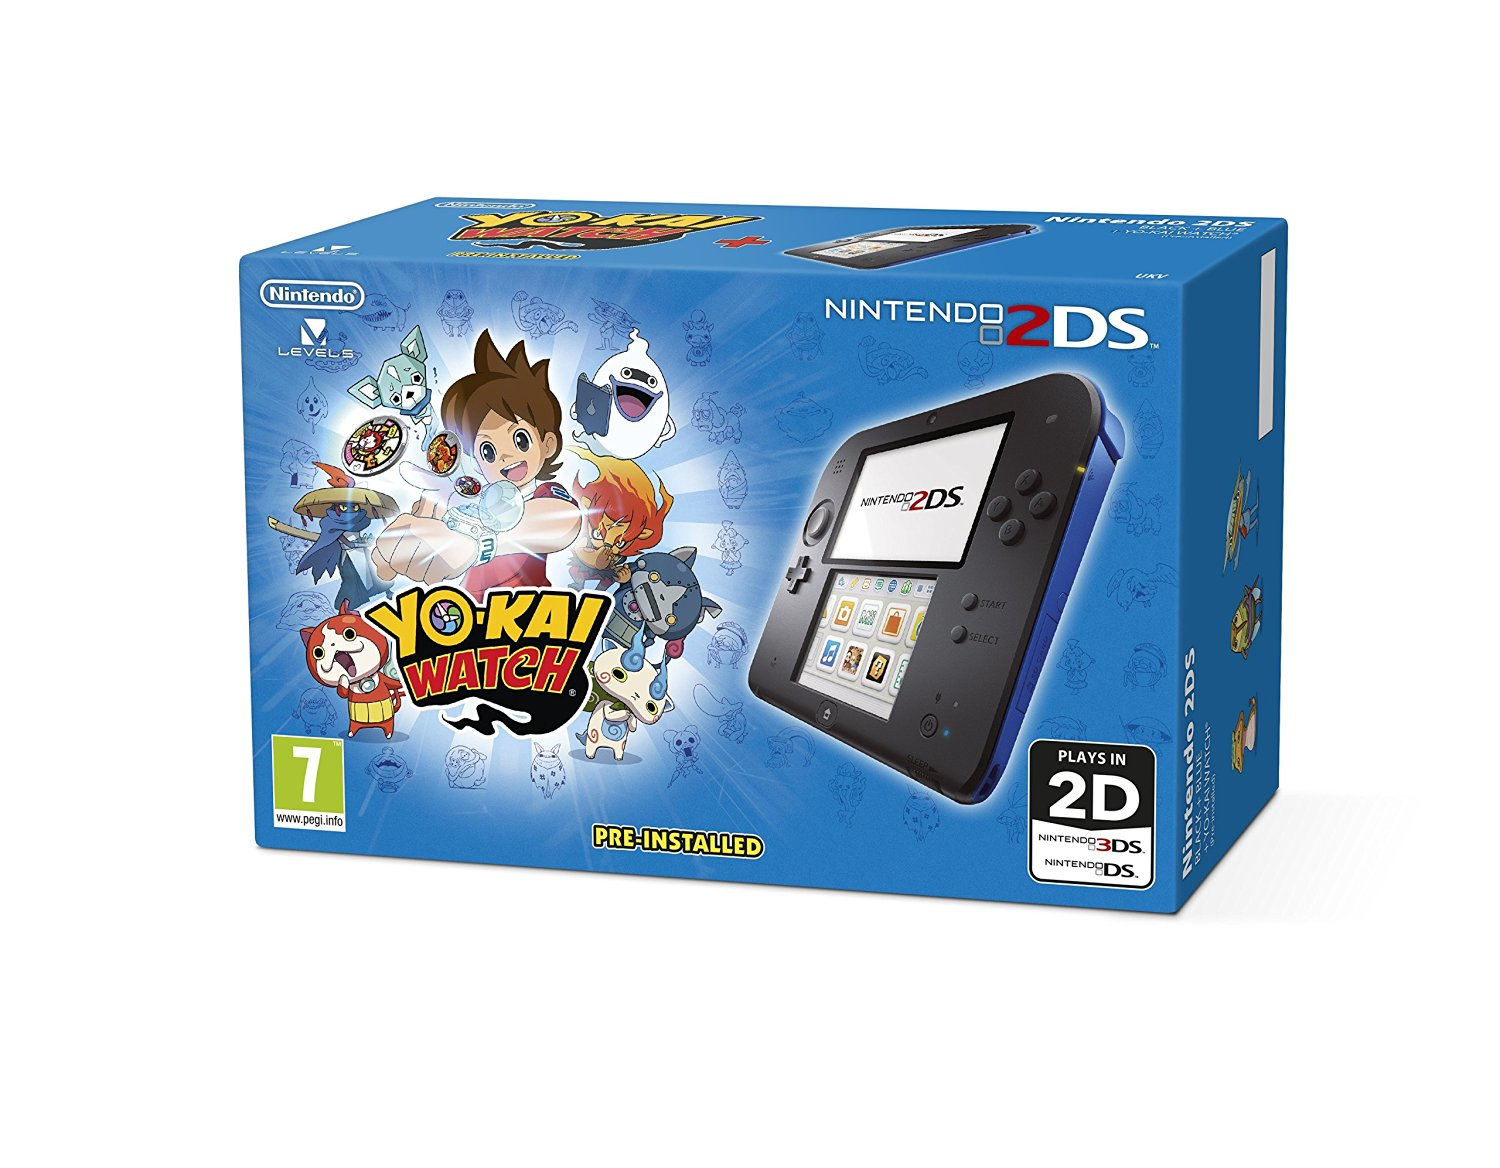 Europe: limited edition for Yo-kai Watch, sales data for New Style ...